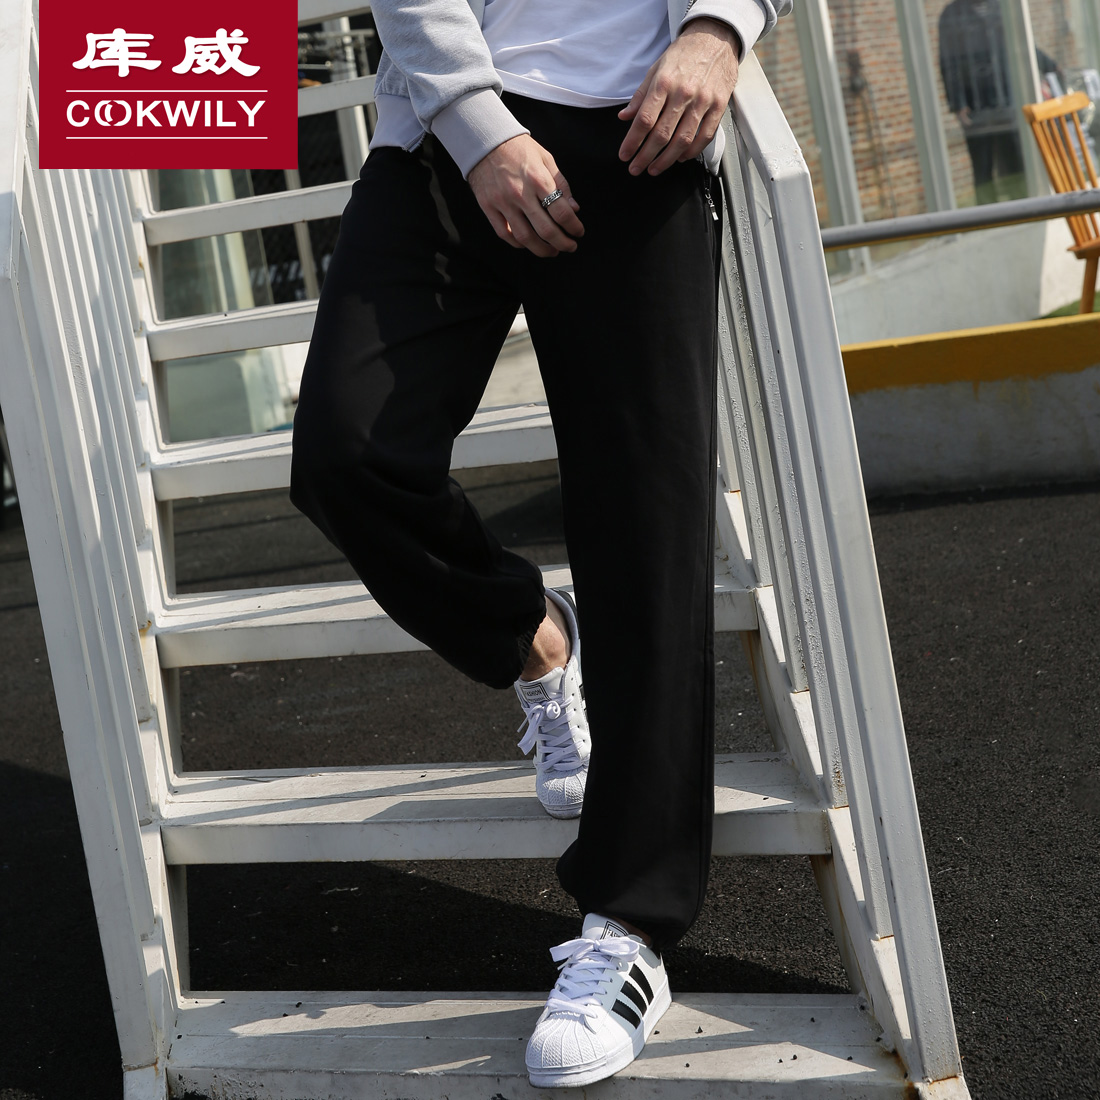 Pool basketball jogging pants wei pants male sports trousers sports pants spring and autumn loose to close the mouth casual pants feet wei pants